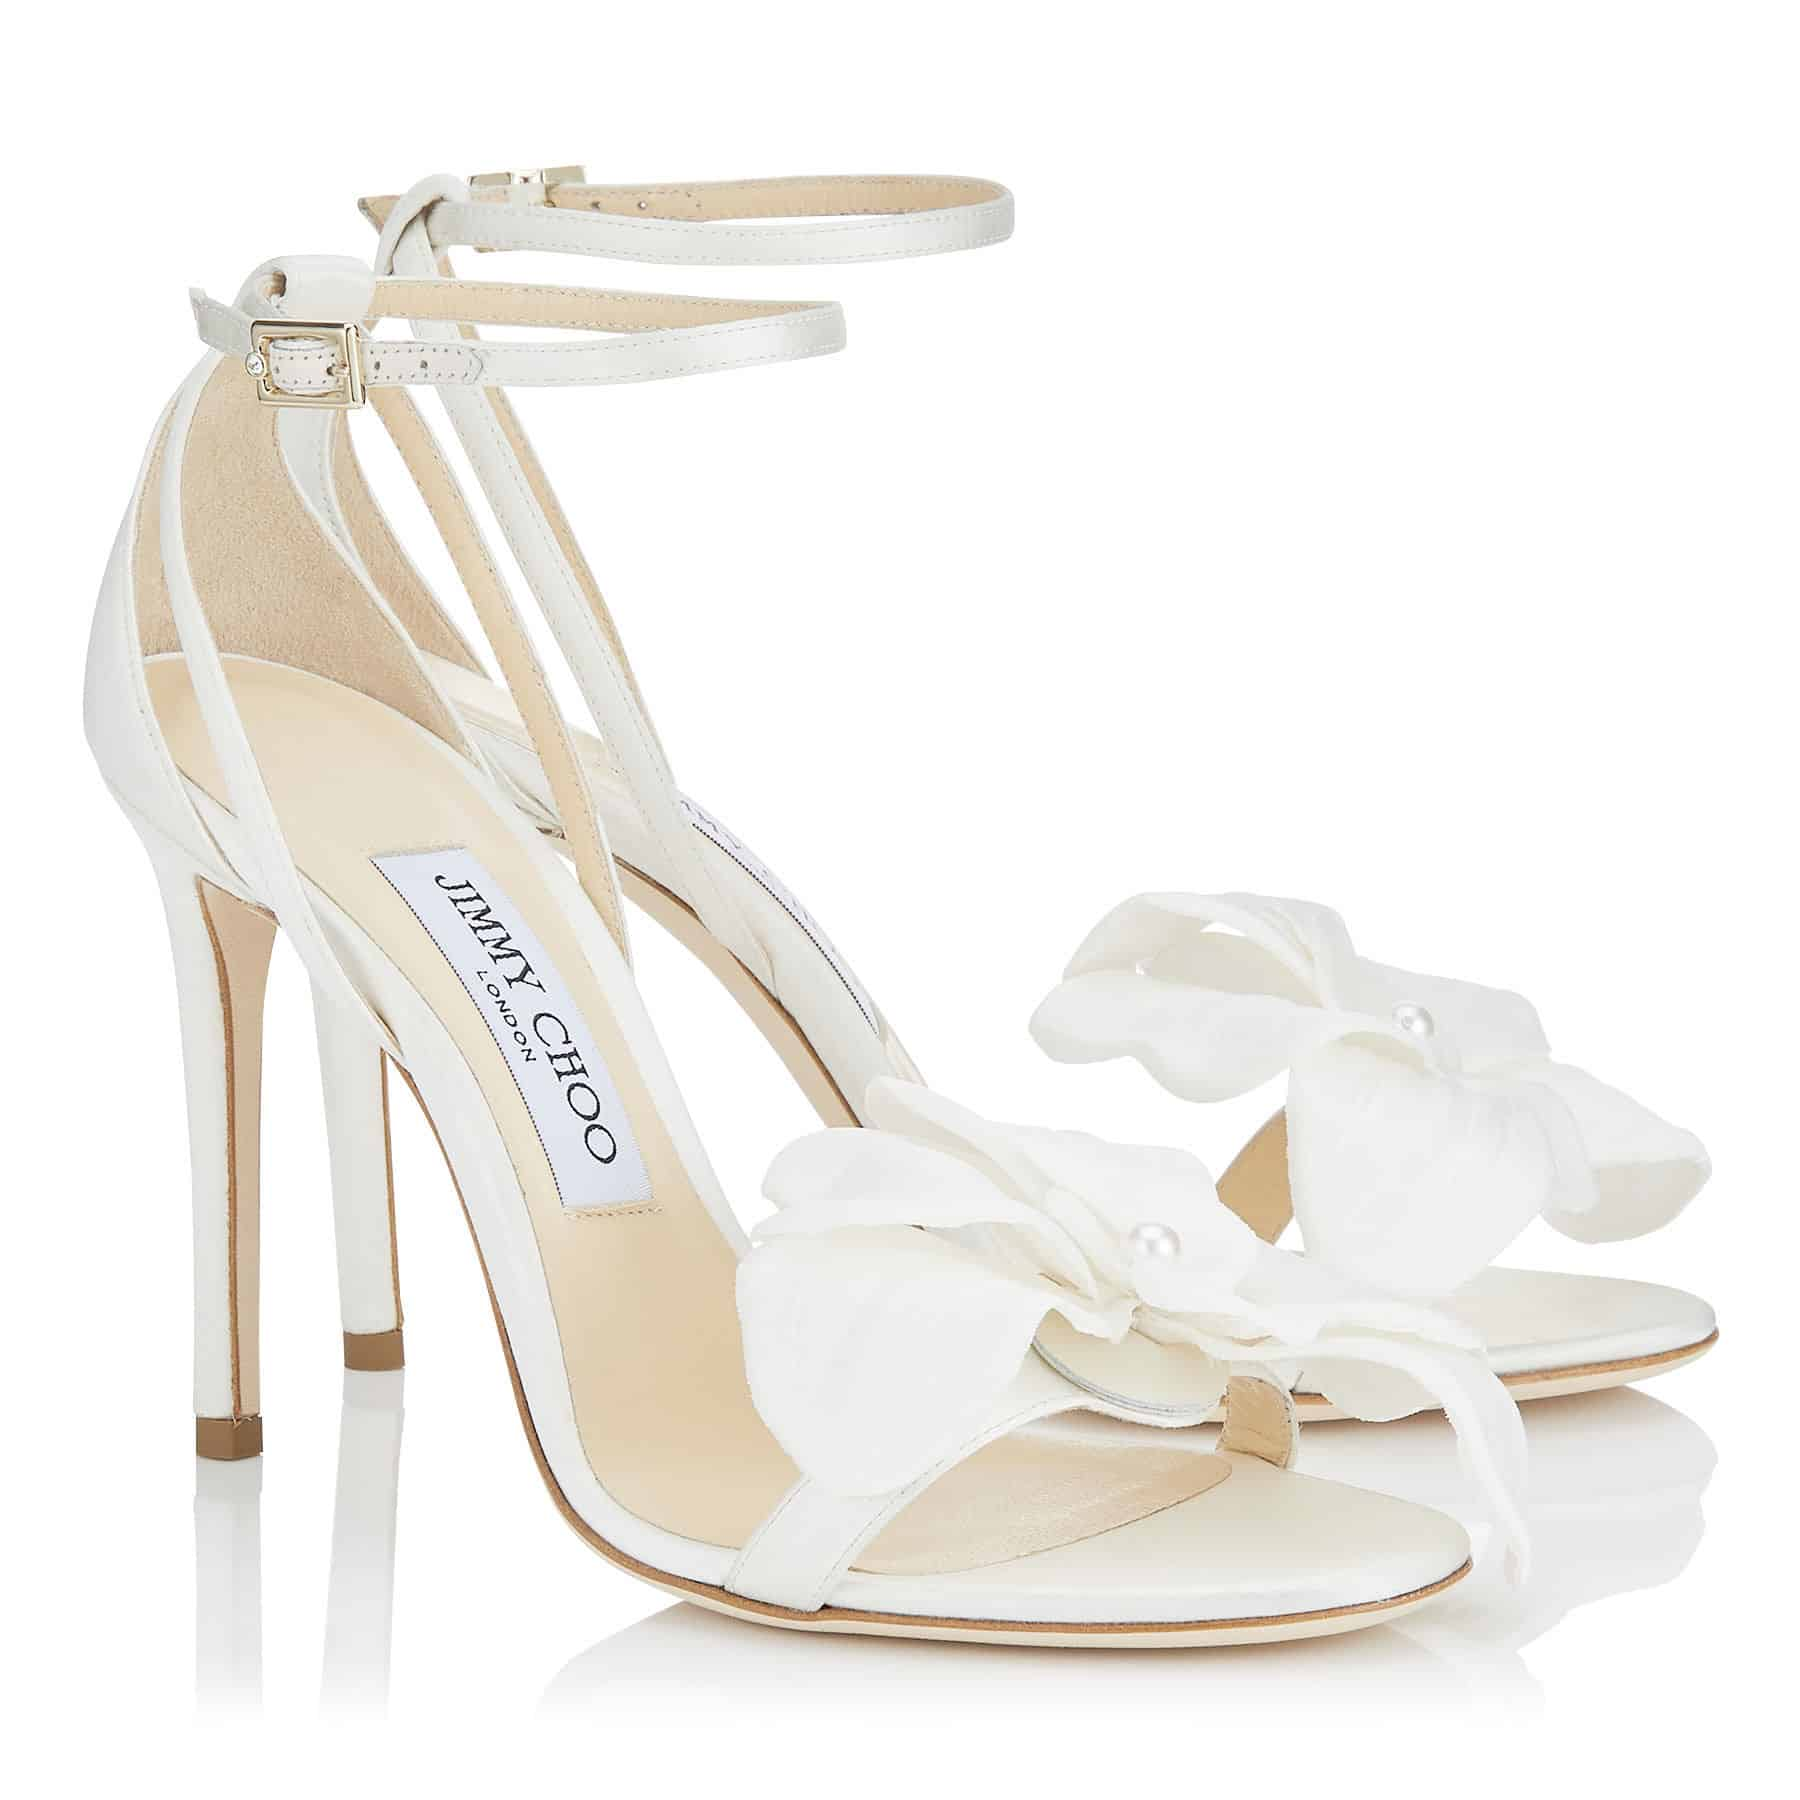 50 stunning pairs of wedding shoes for the bride who wants to make a statement with her footwear